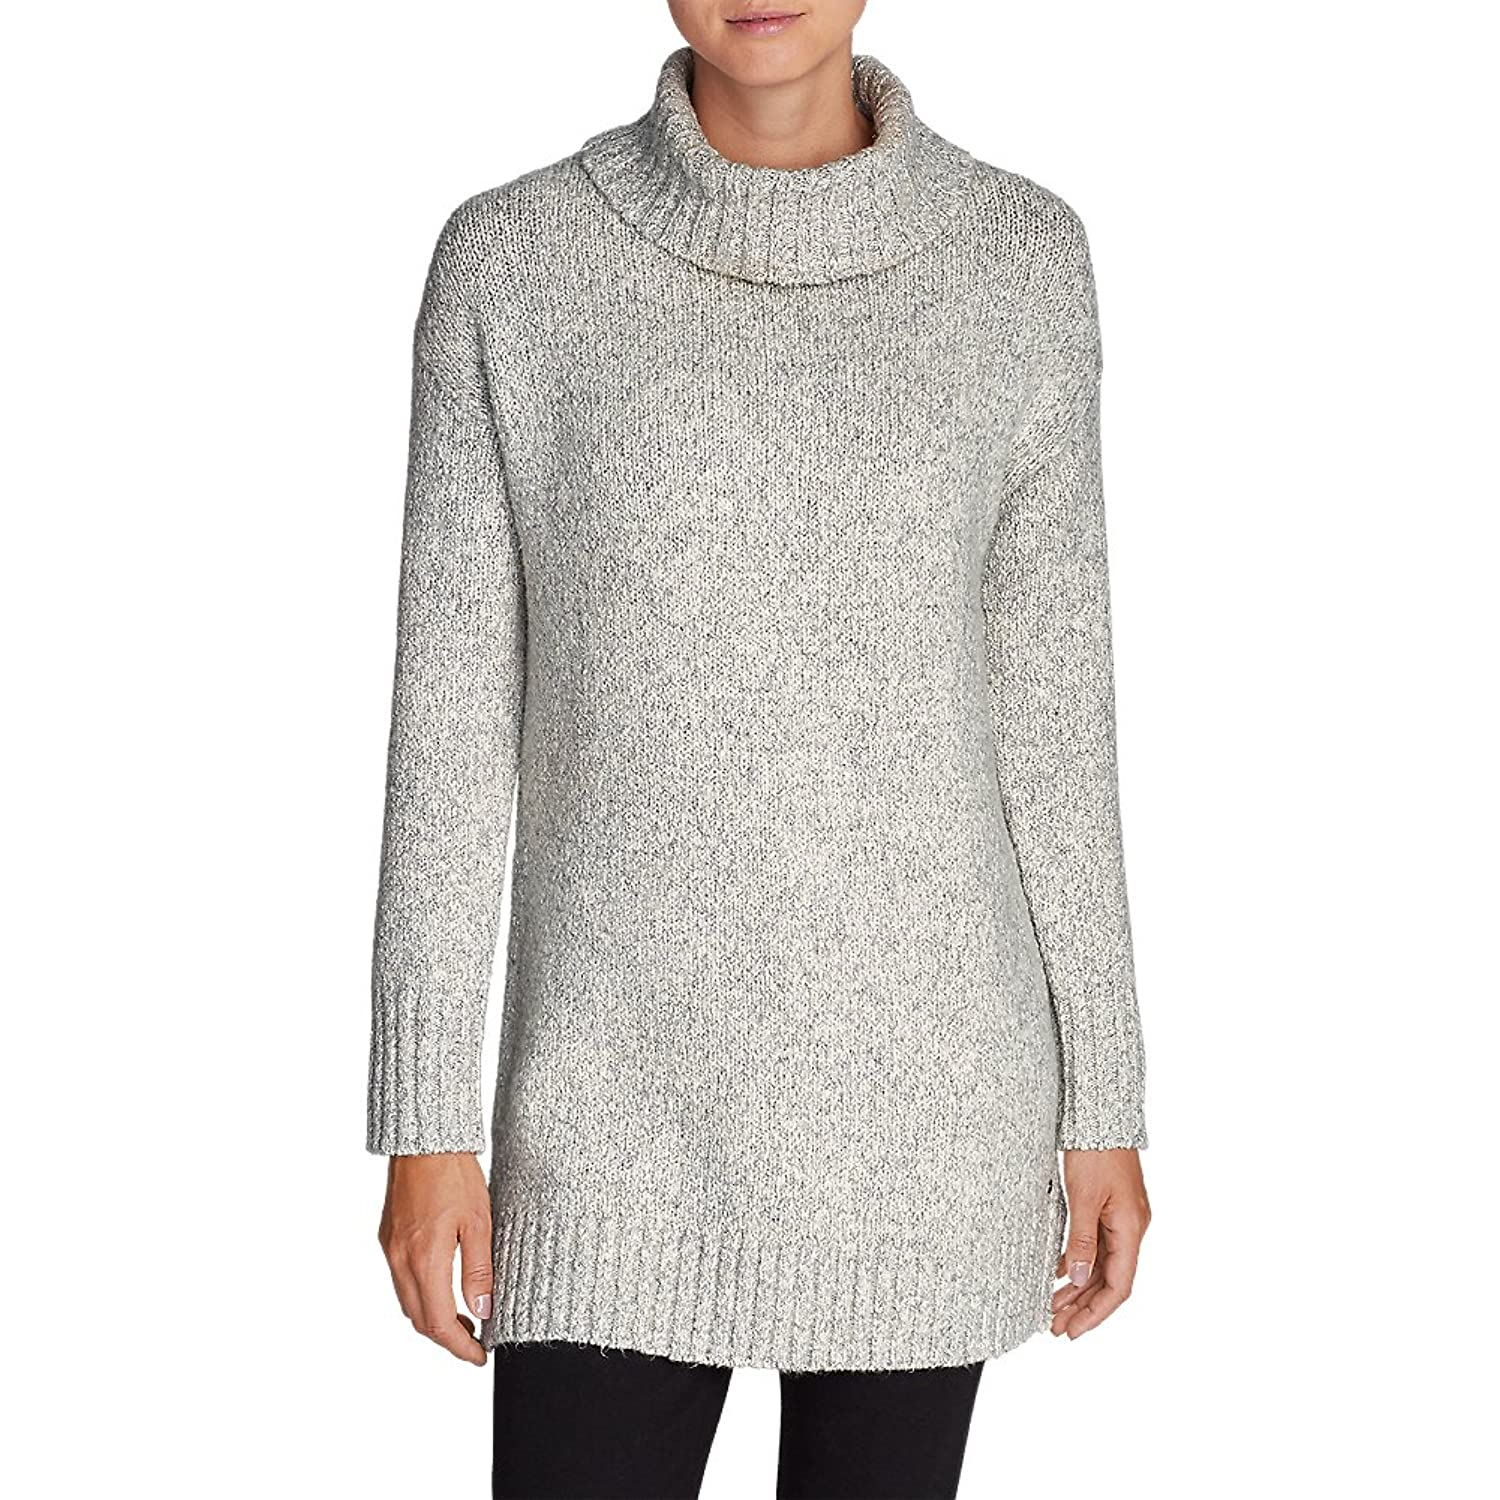 Eddie Bauer Womens Cable Fable Turtleneck Sweater At Amazon Womens